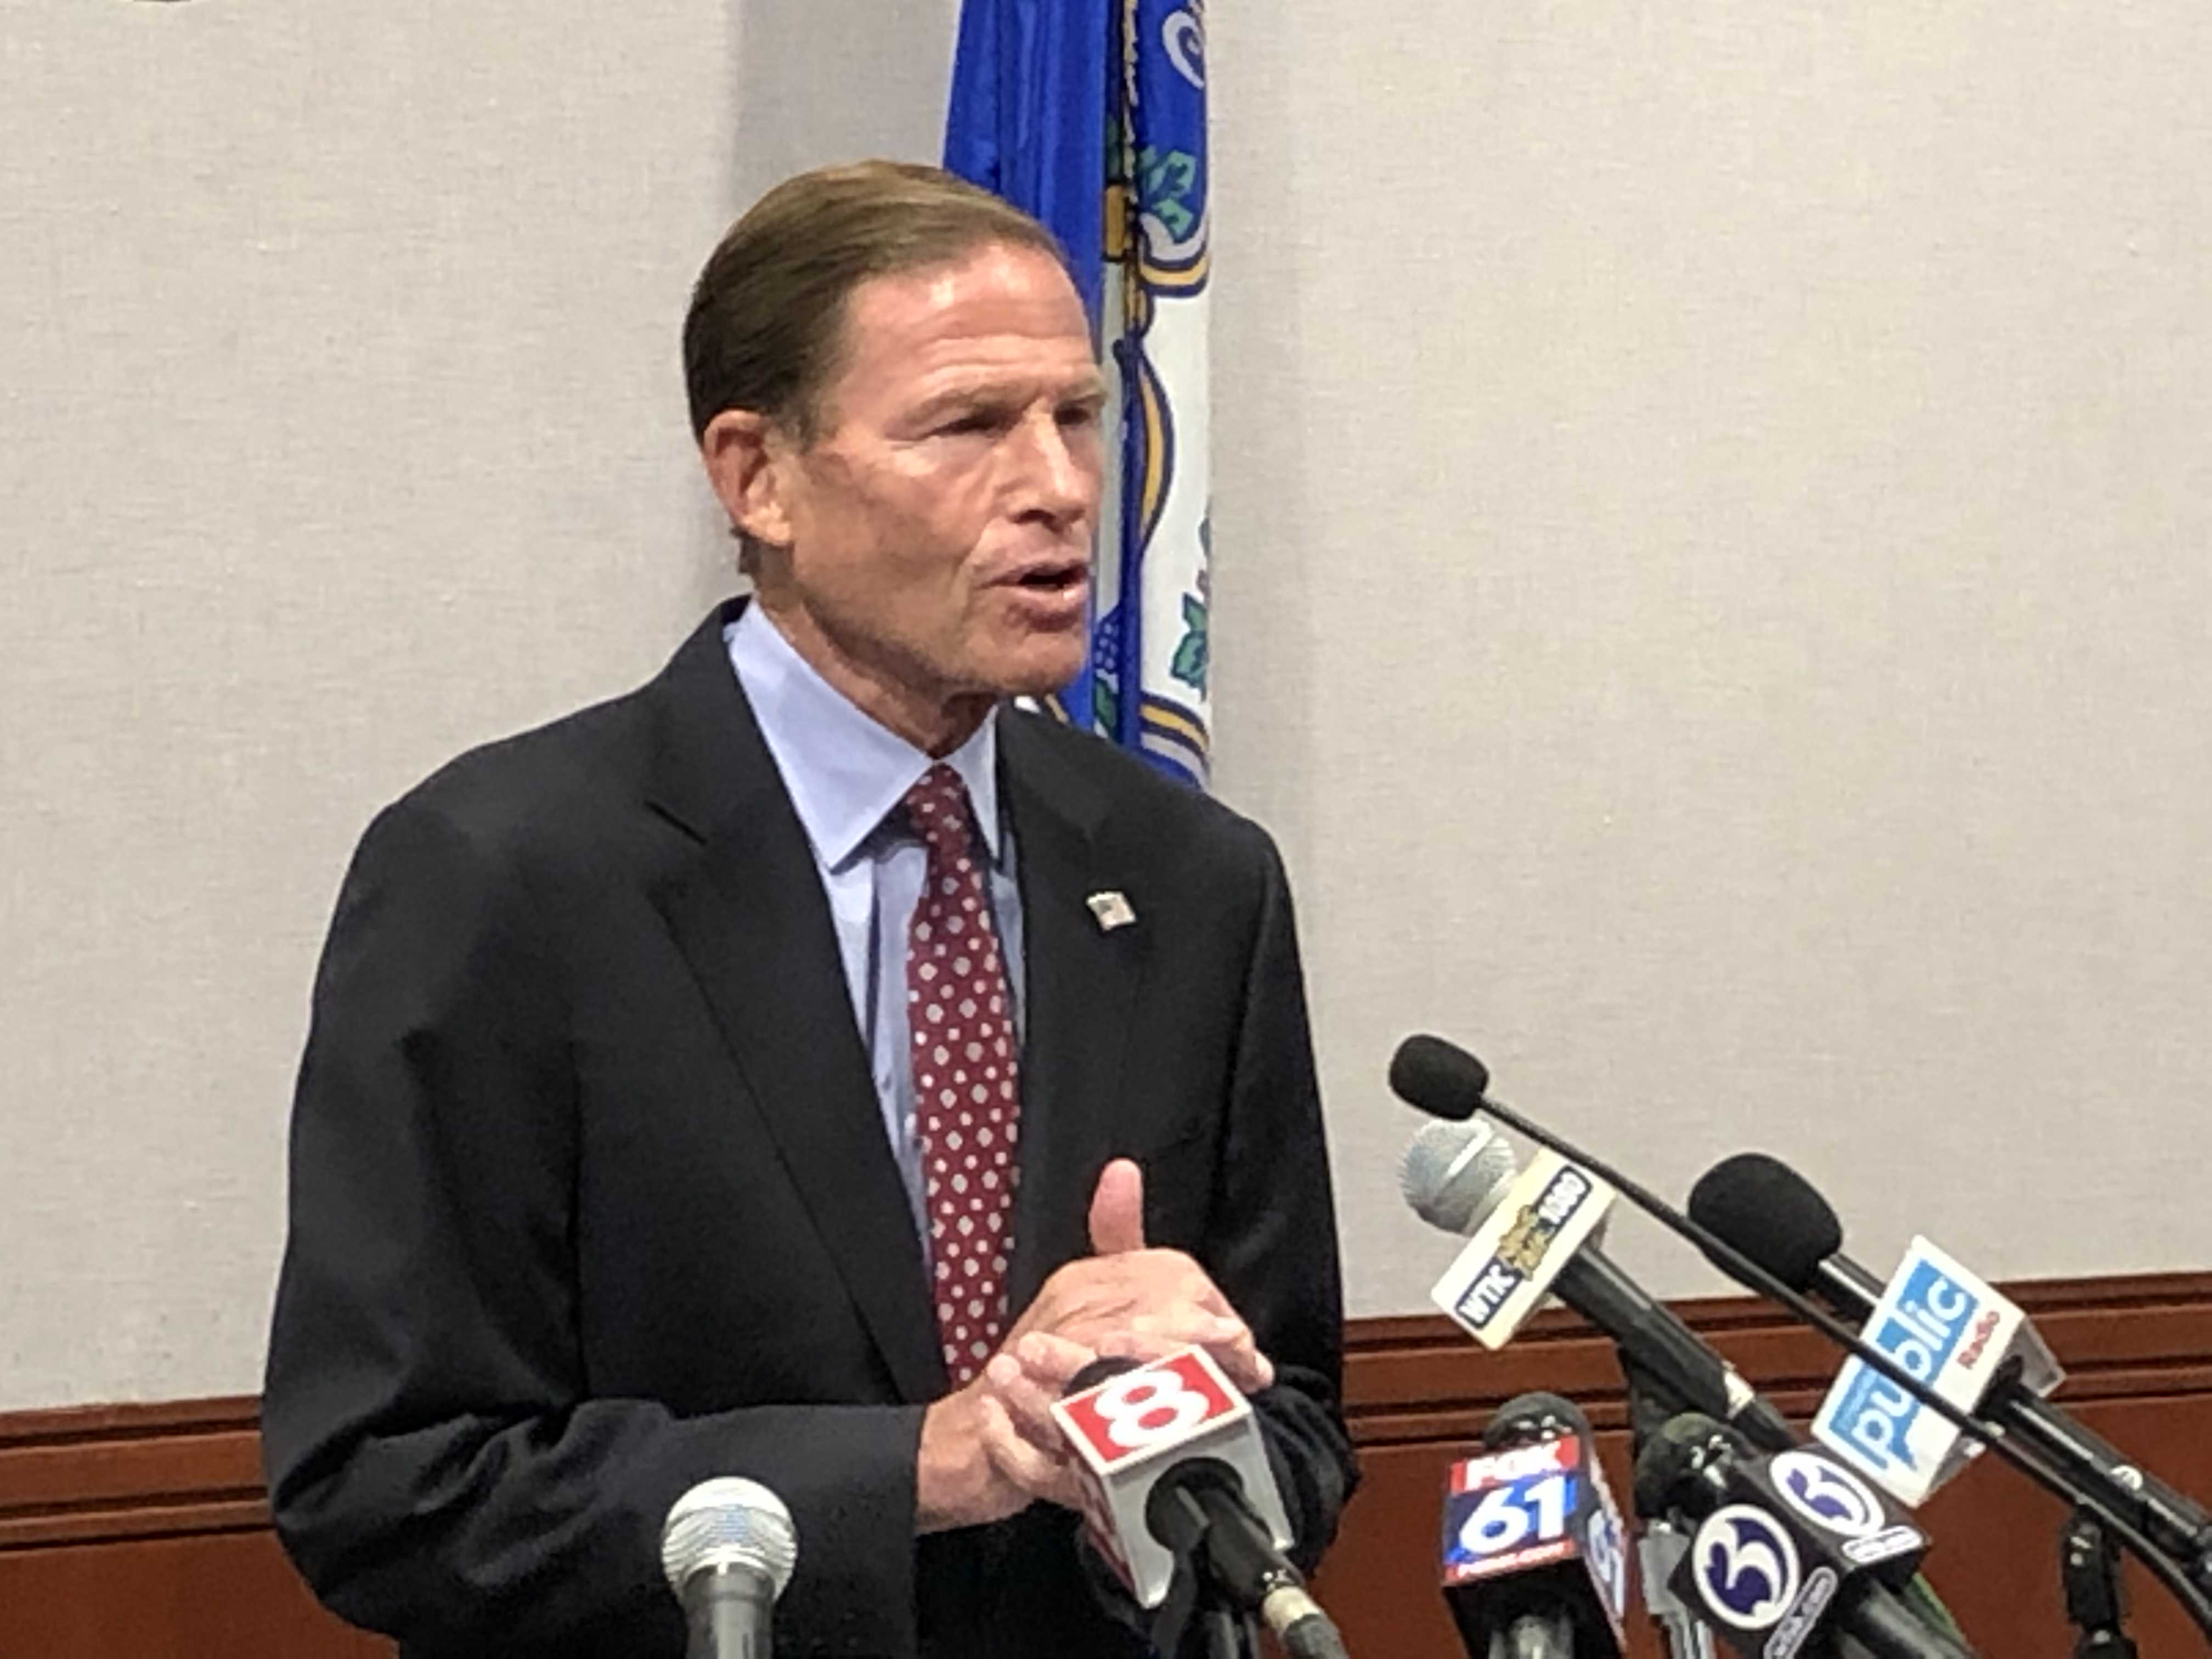 Blumenthal optimistic about GOP support in Senate for impeachment